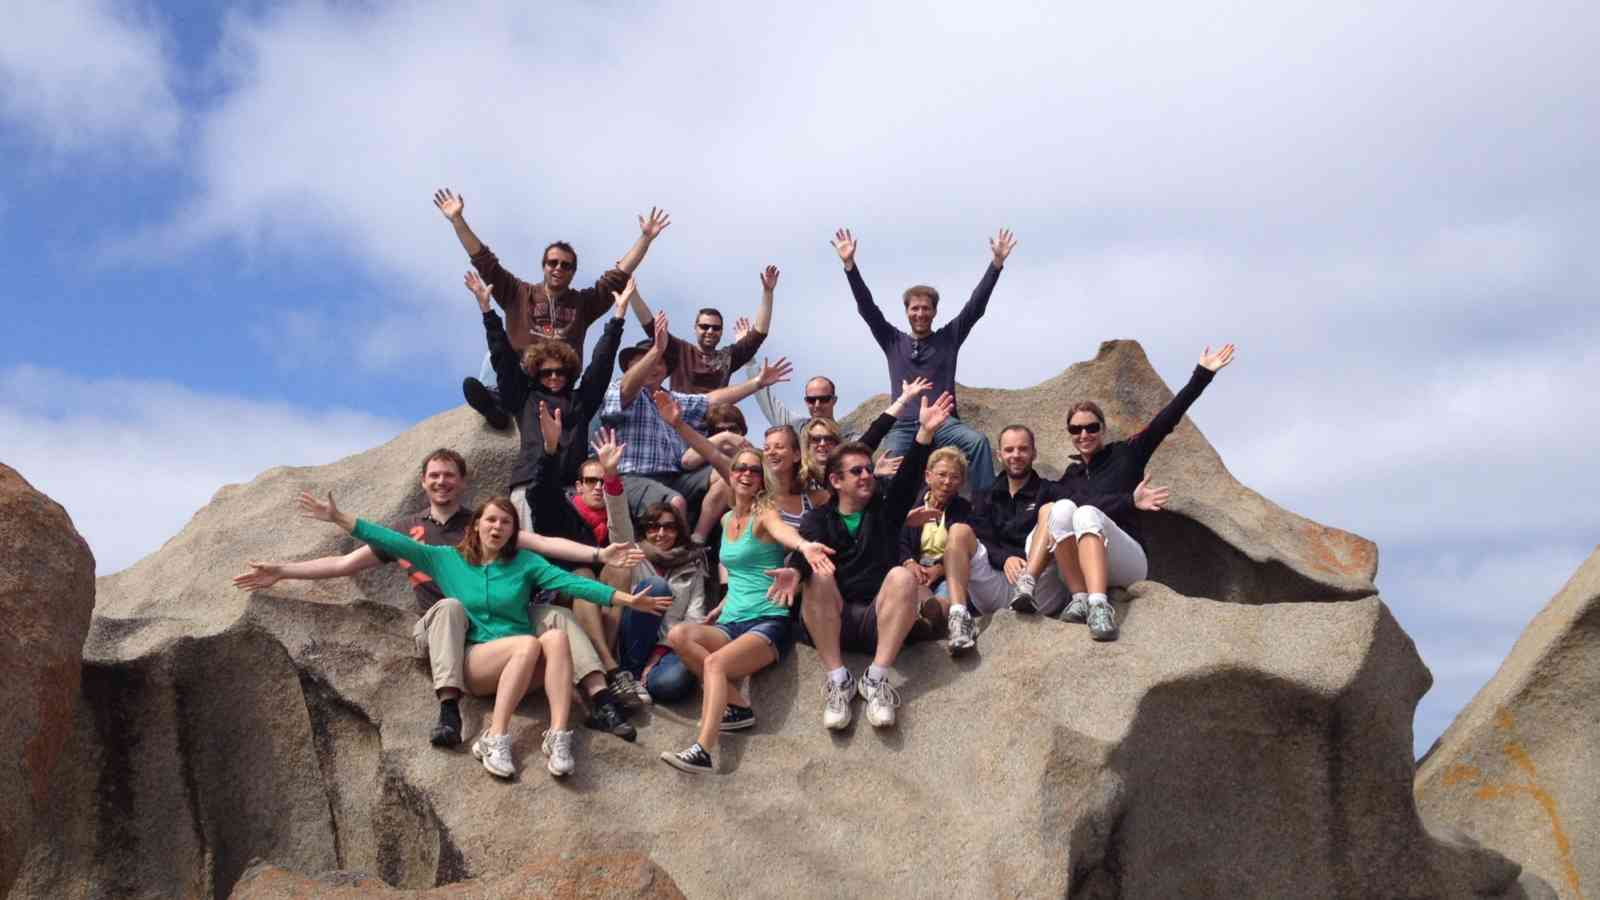 Excited Group at Remarkable Rocks